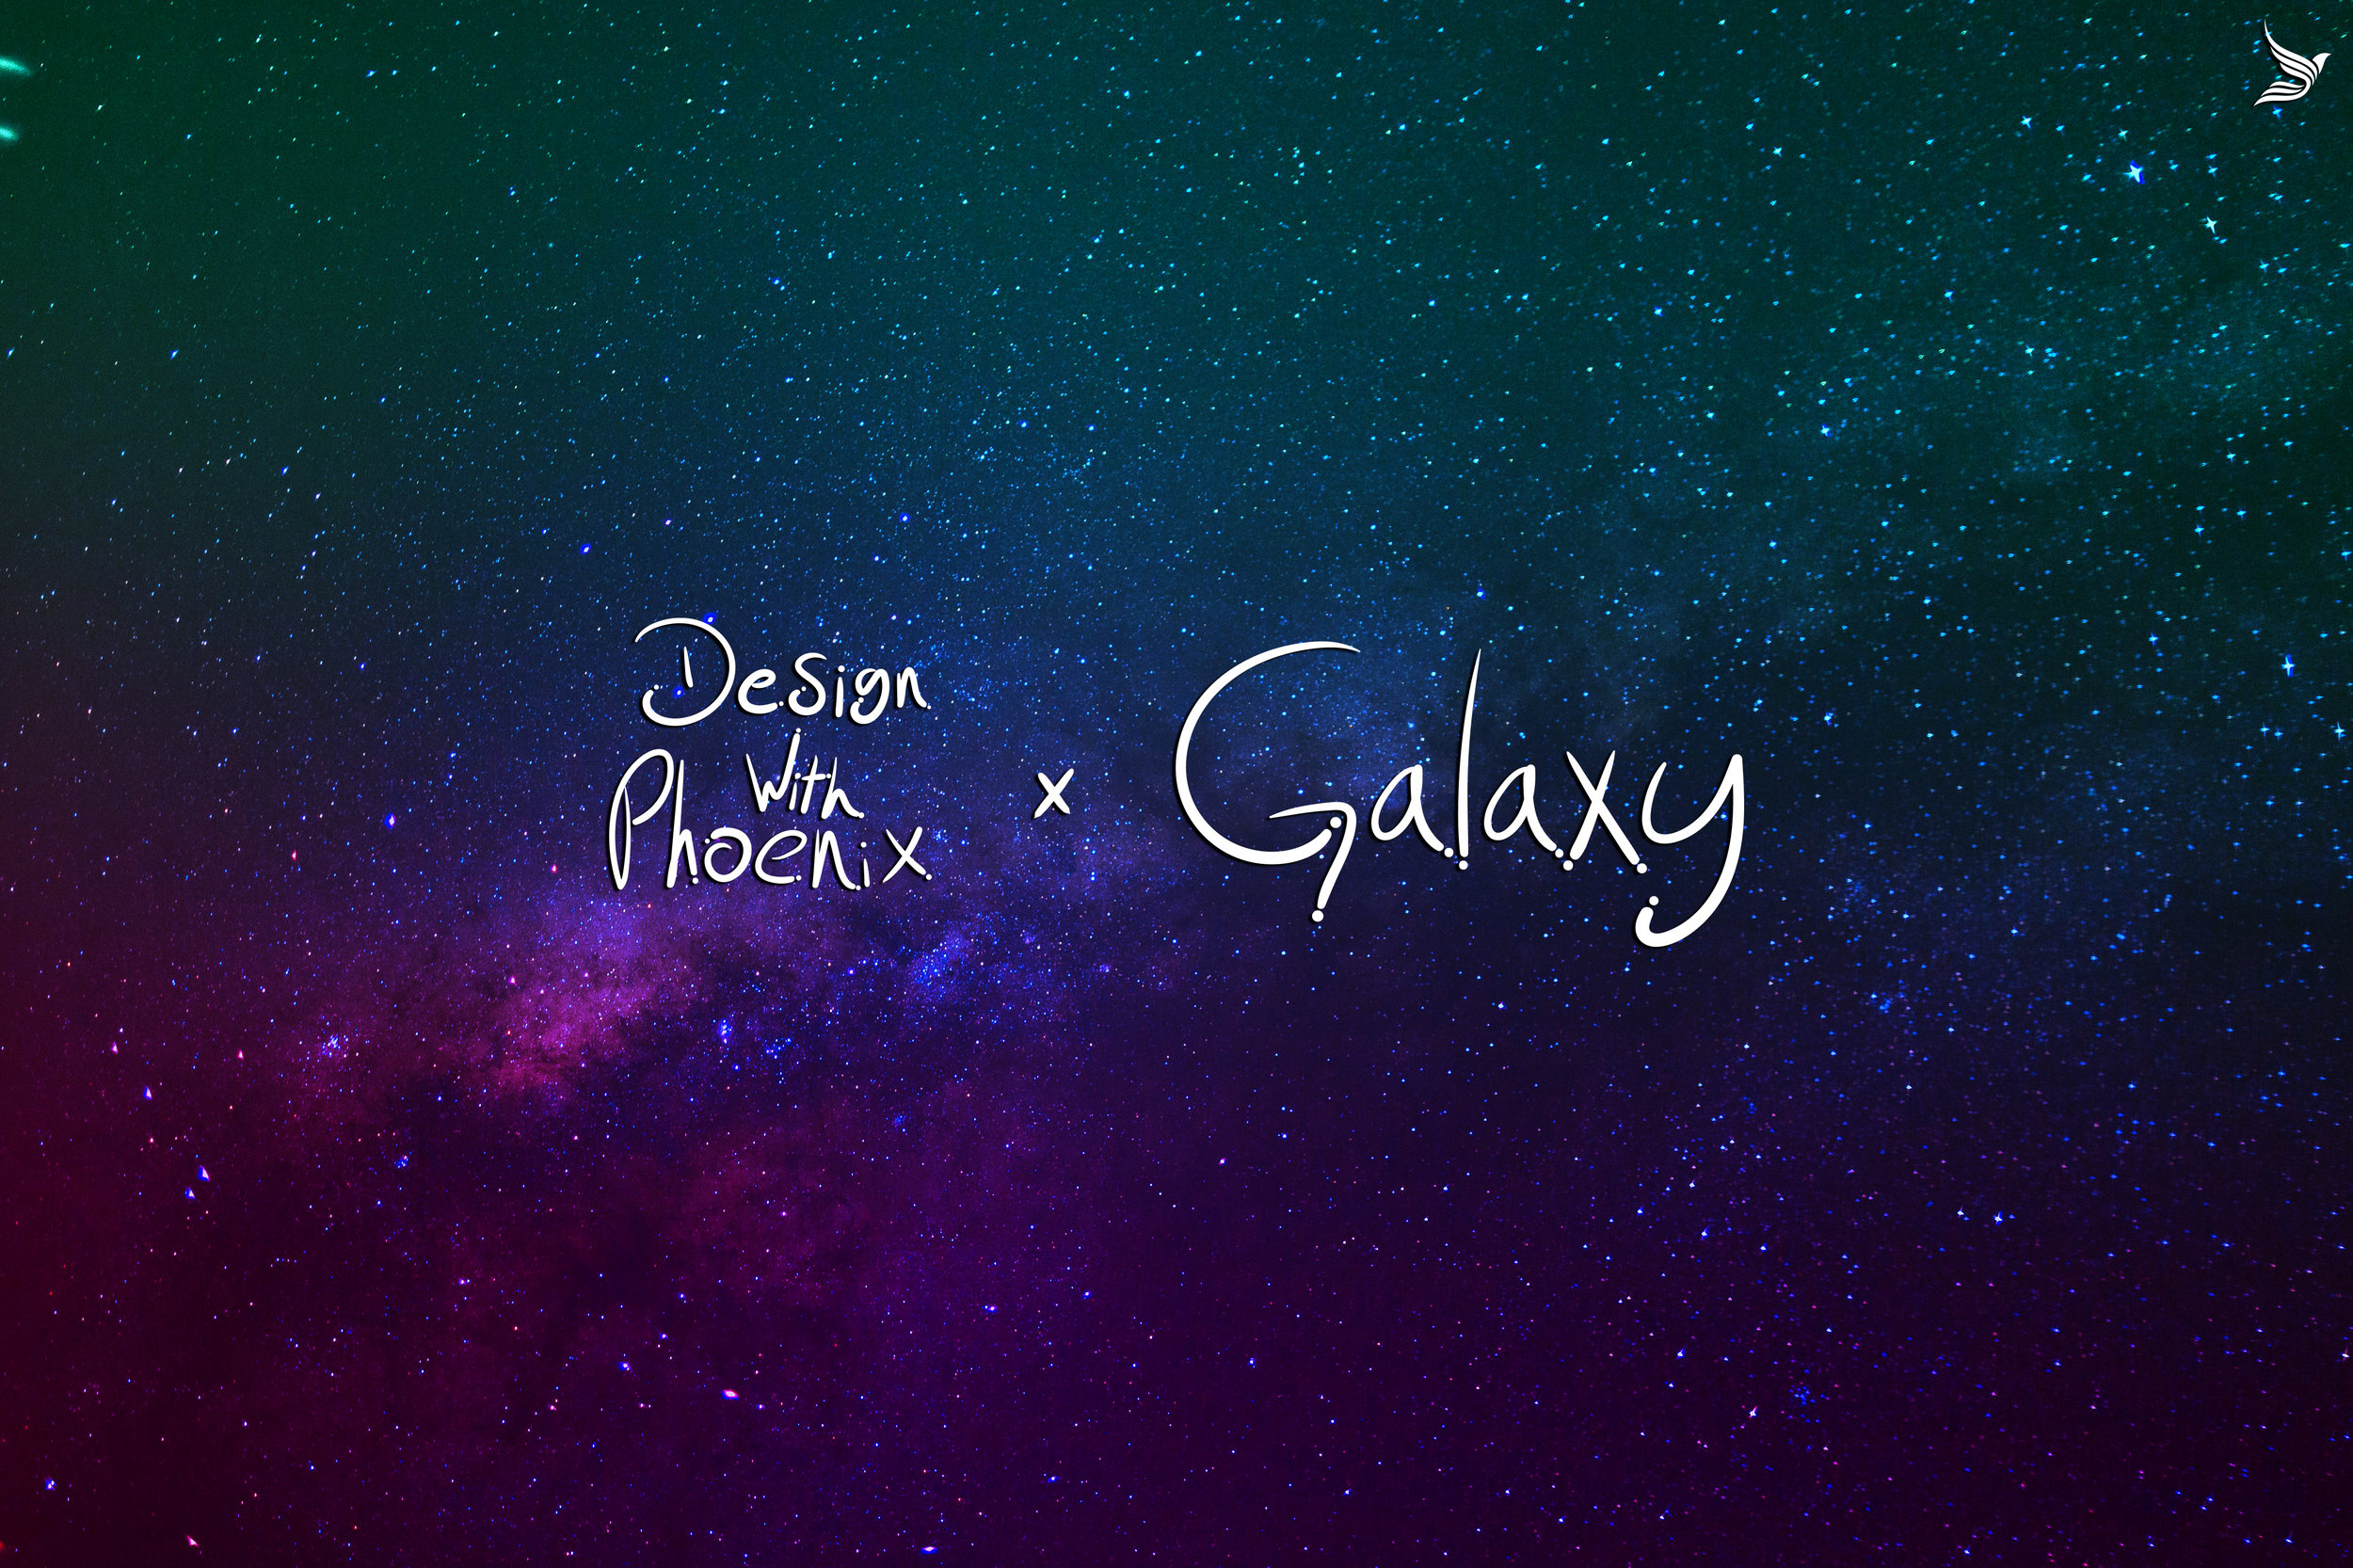 Stock Image of a Galaxy and the word Galaxy on top. With color play gradient setup.